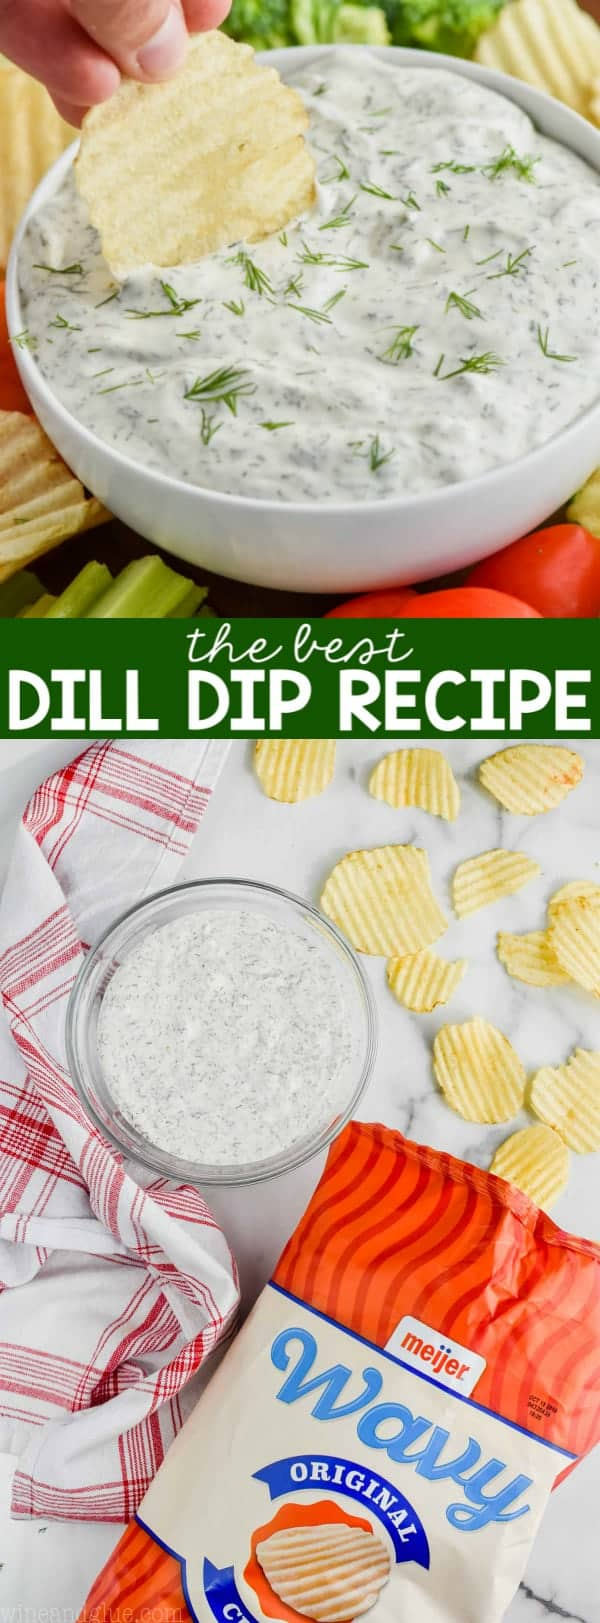 up close of chip being dipped into dill dip recipe